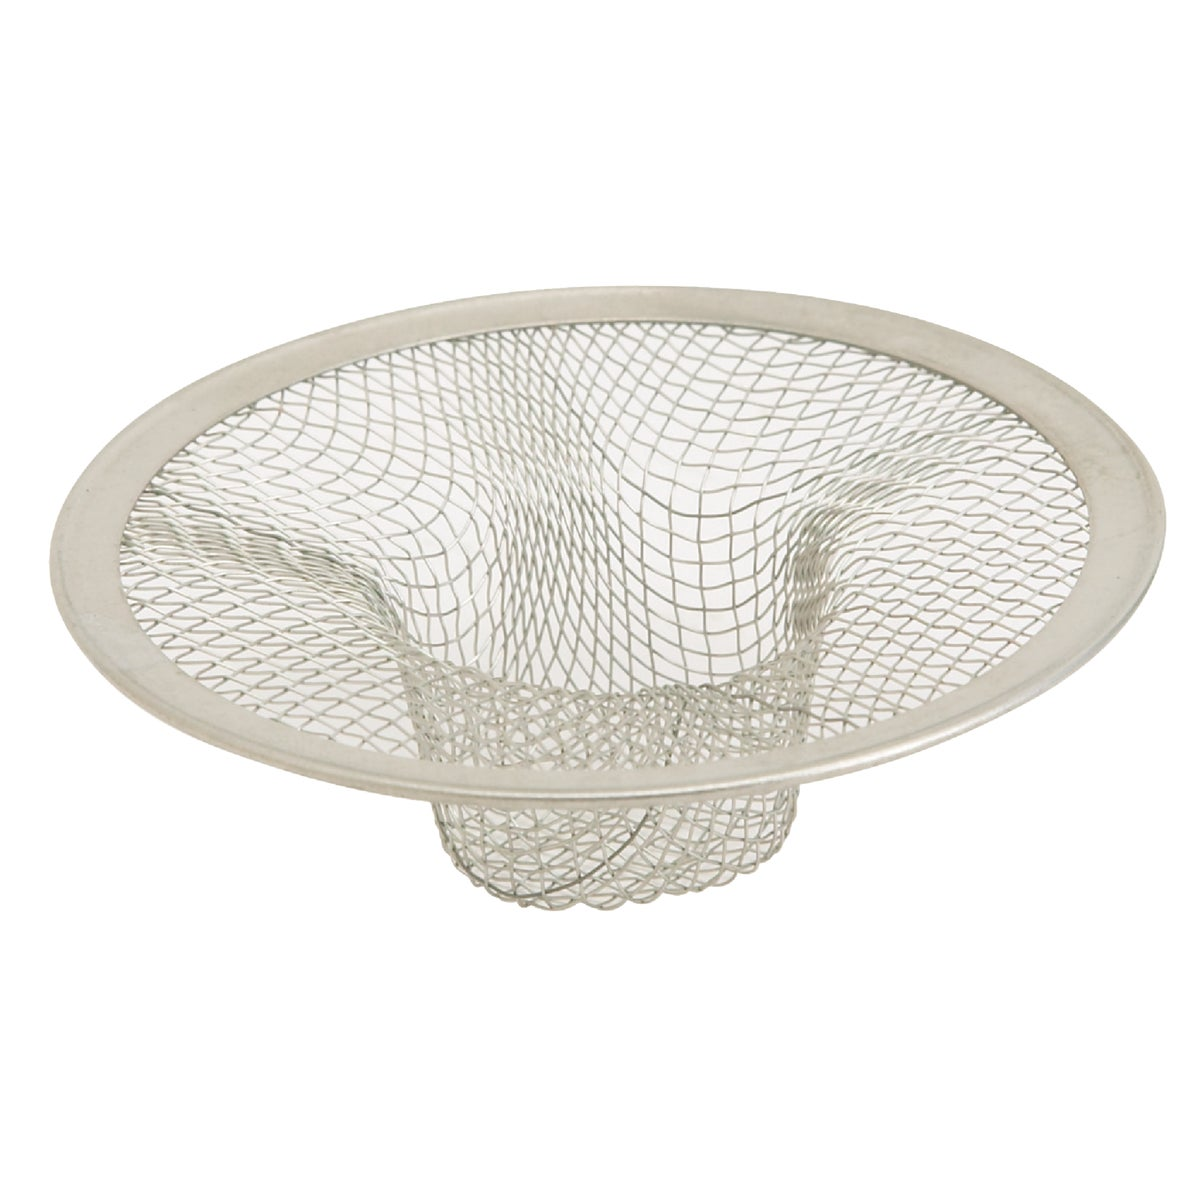 "2-3/4"" SS TUB STRAINER - 88821 by Danco Perfect Match"